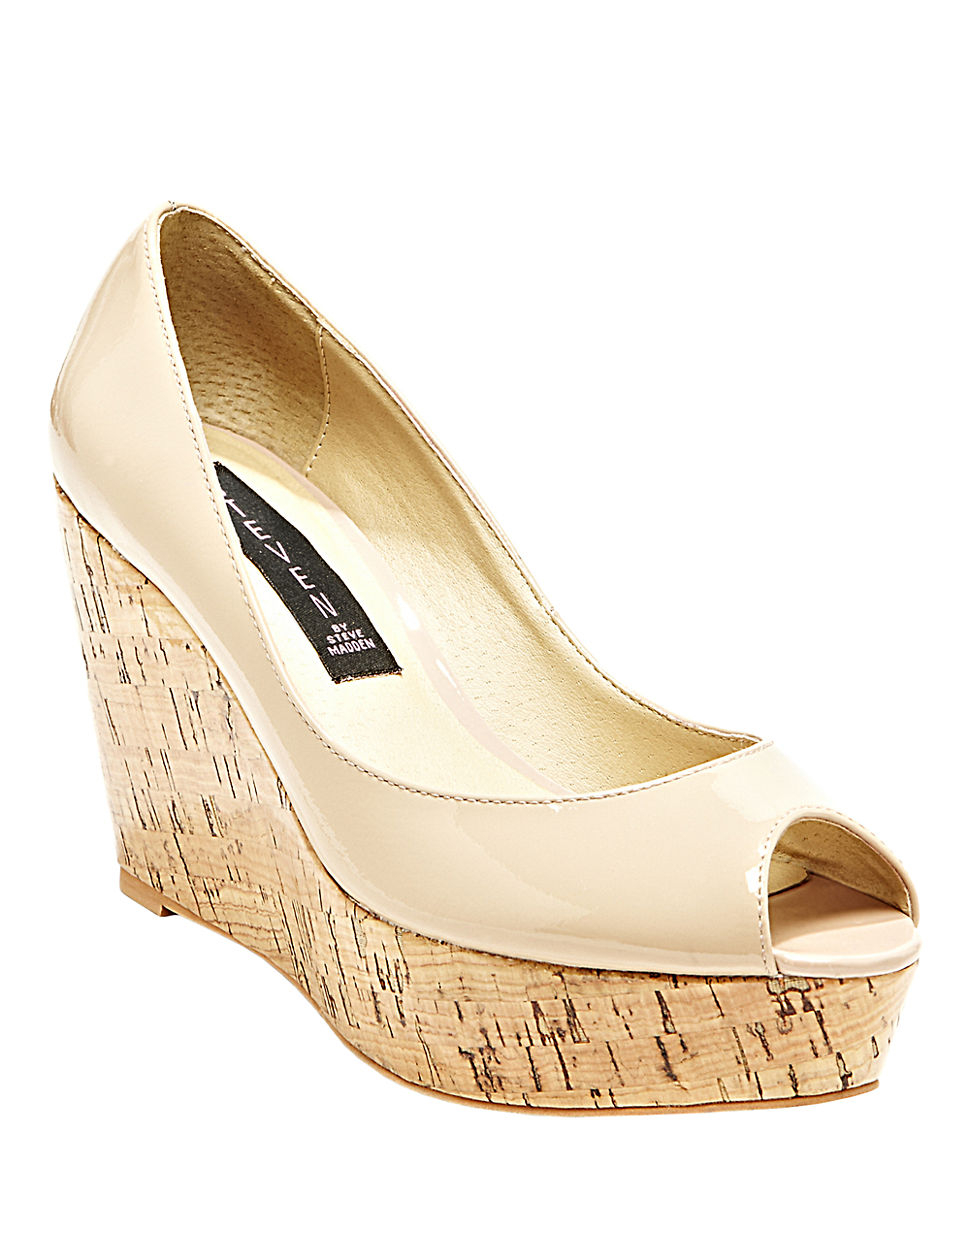 aa182ad0417 Lyst - Steven By Steve Madden Favvorr Patent Leather Wedges in Natural